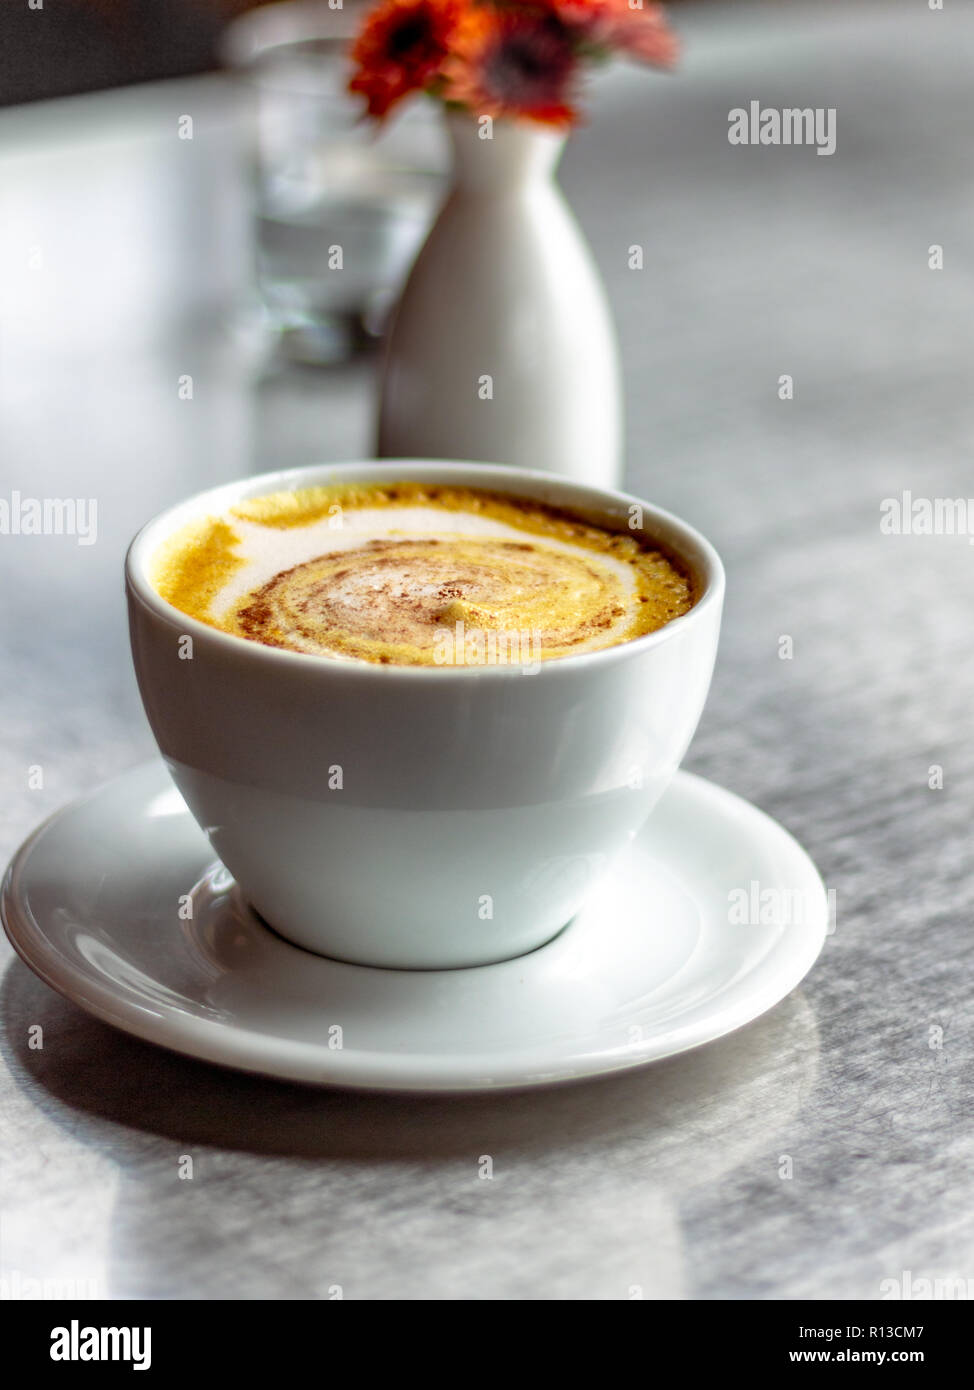 Casual Coffee shop. Latte art. Foaming latte. Water jug in clear glass. orange flowers in a white oval white vase. - Stock Image